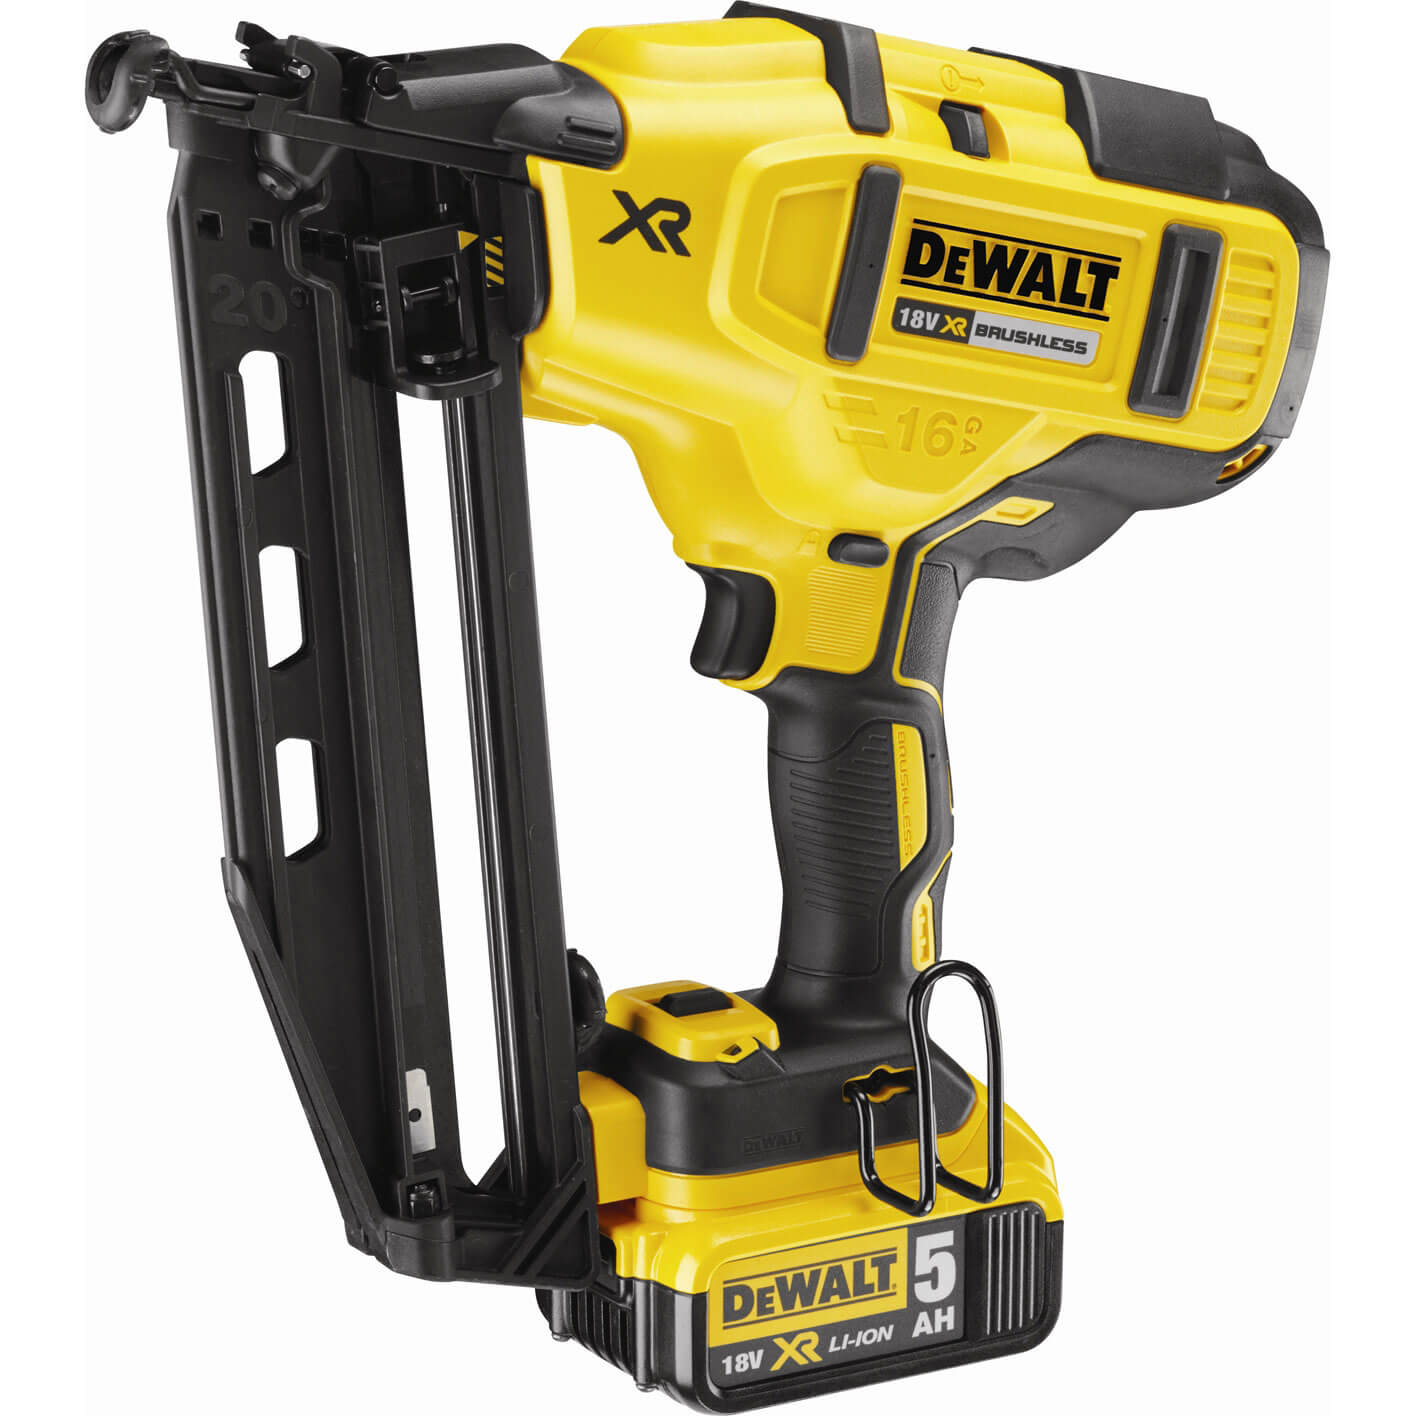 Image of DeWalt DCN660P2 18v Cordless XR Finish Nail Gun with 2 Lithium Ion Batteries 5ah